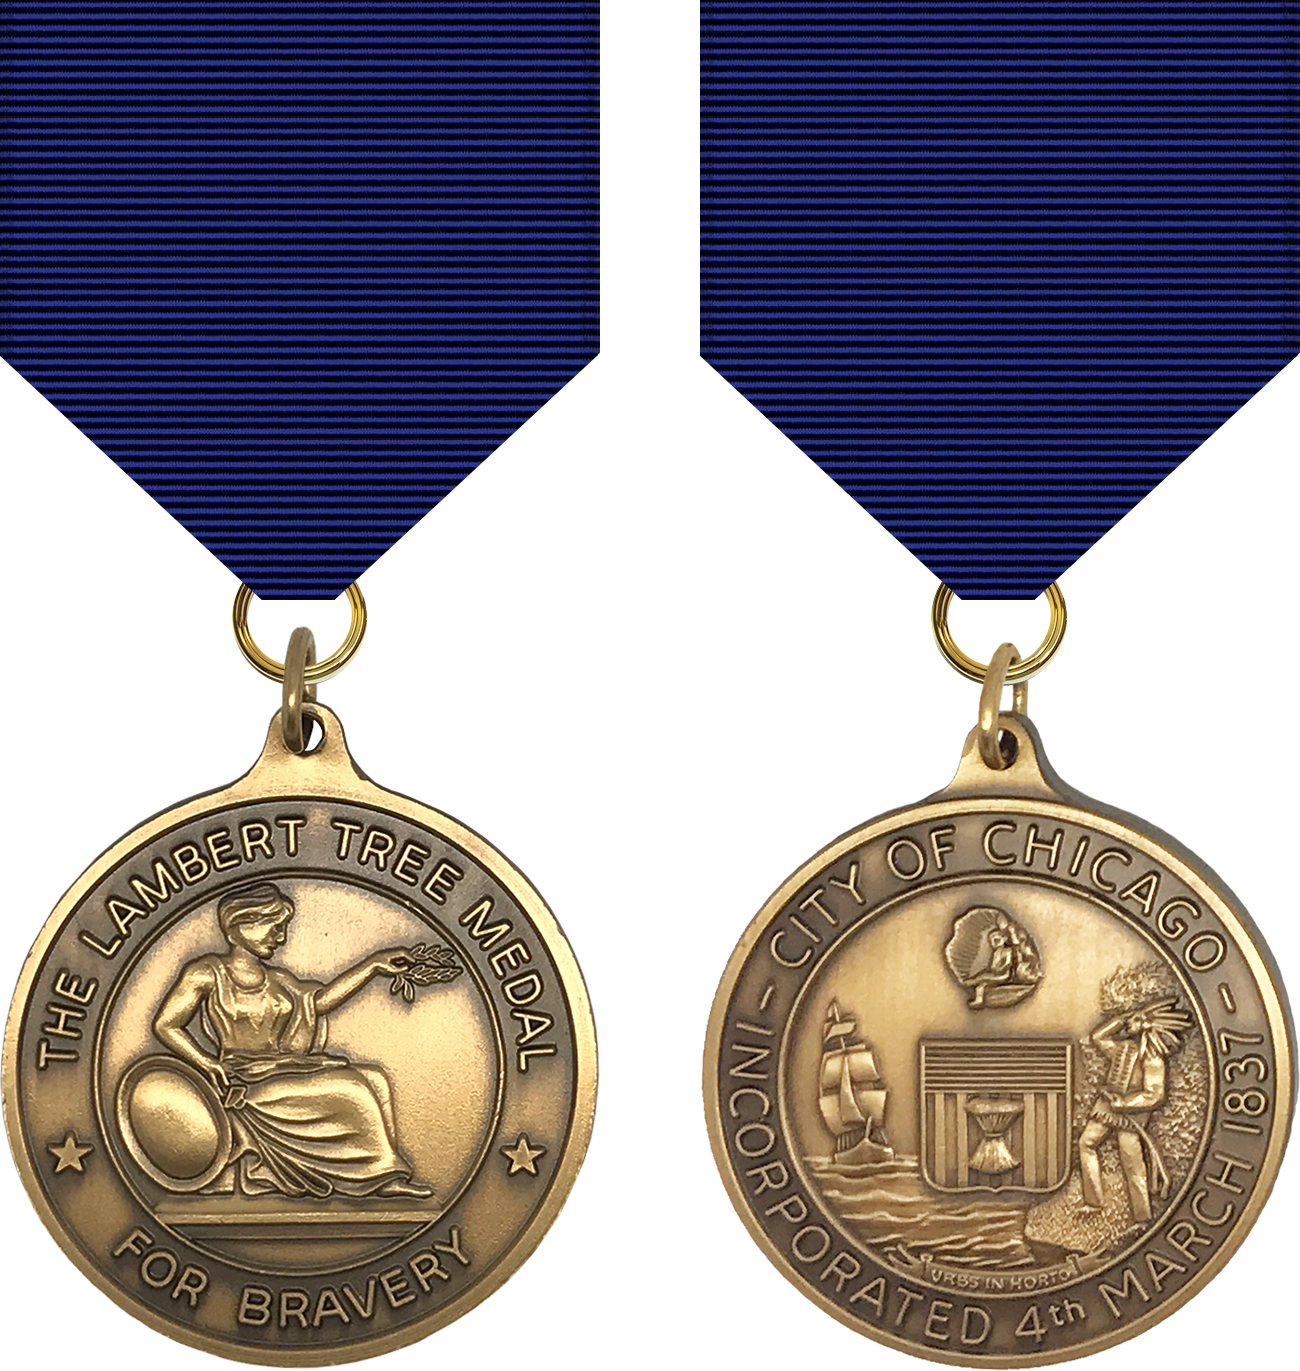 Lambert Tree Medal - 1969 Series